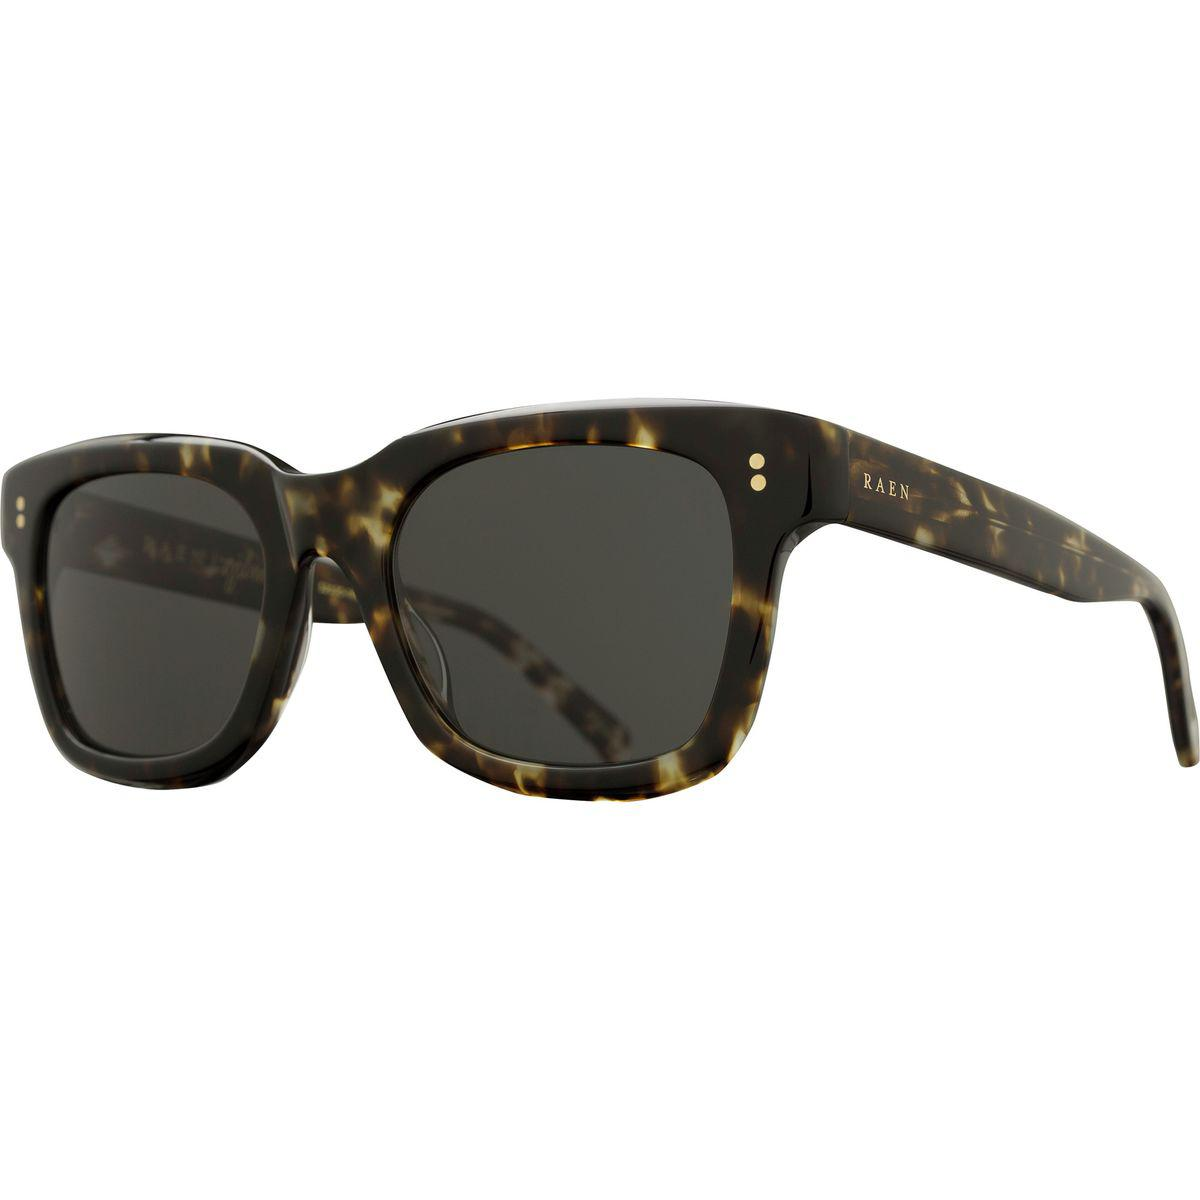 7fb3cb4aae1 Raen - Multicolor Gilman Sunglasses for Men - Lyst. View fullscreen